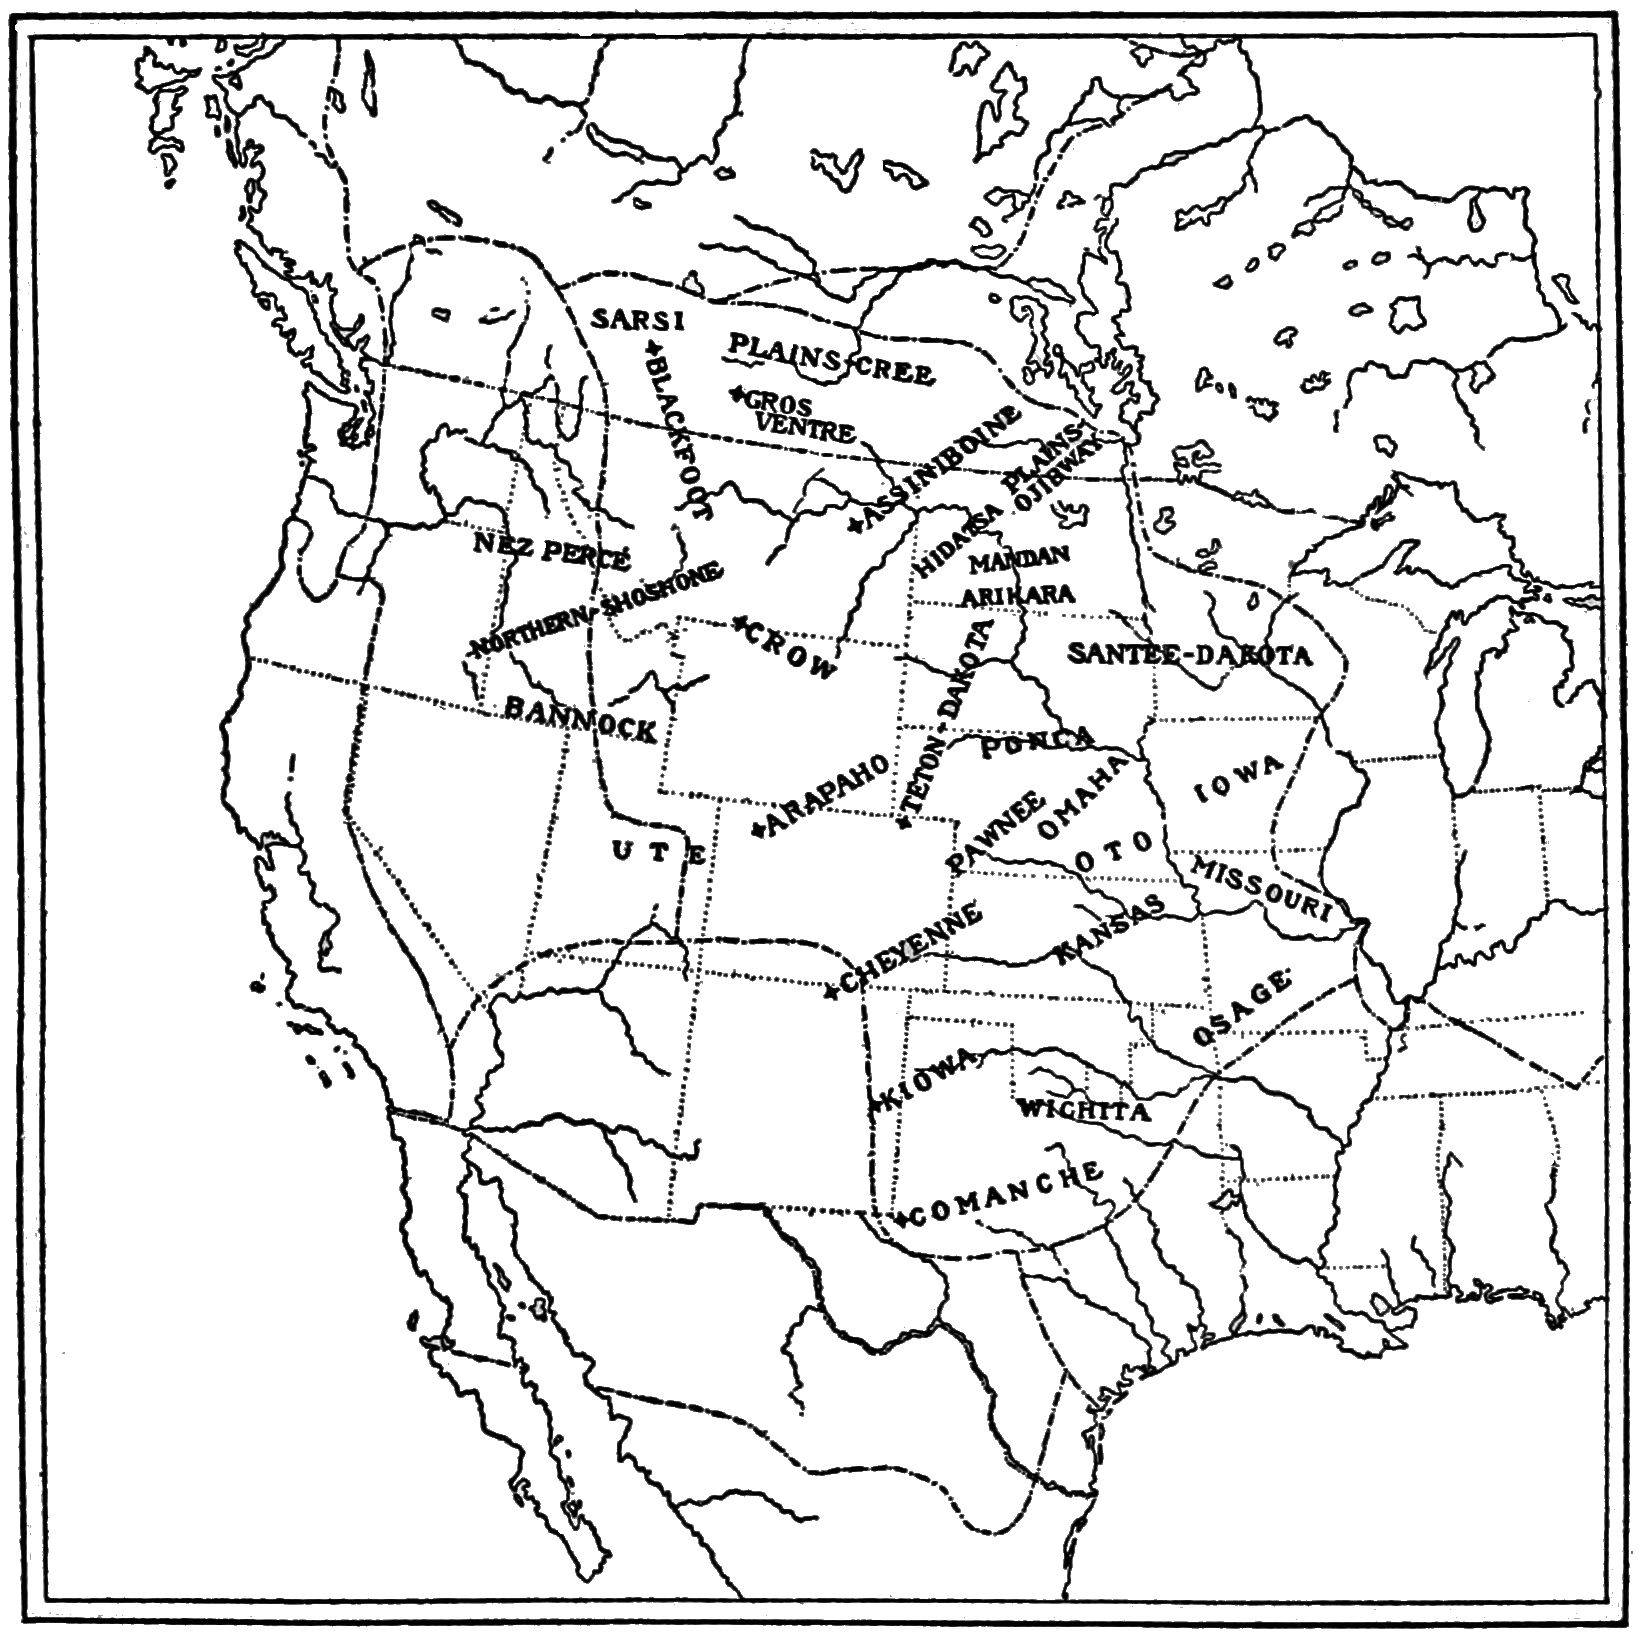 PSM V82 D443 Map of the area of the plains indians.png